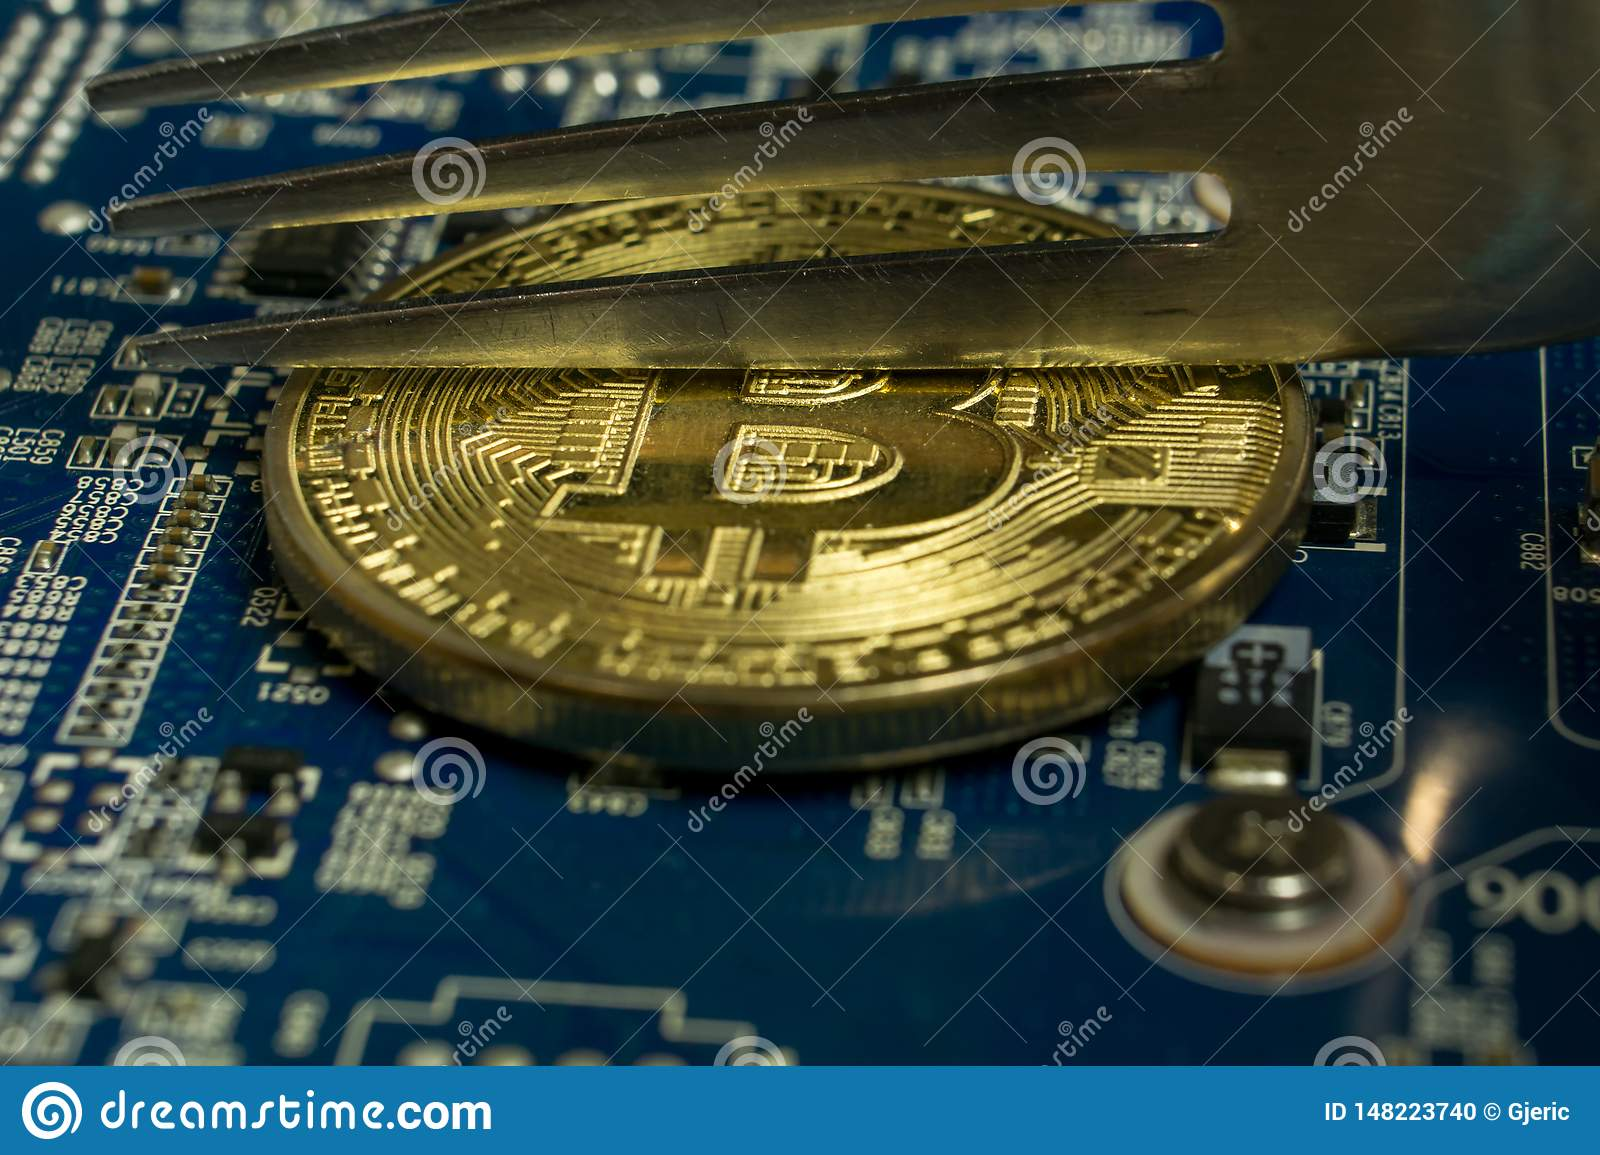 A single Bitcoin coin on the blue computer motherboard and fork trying to half it